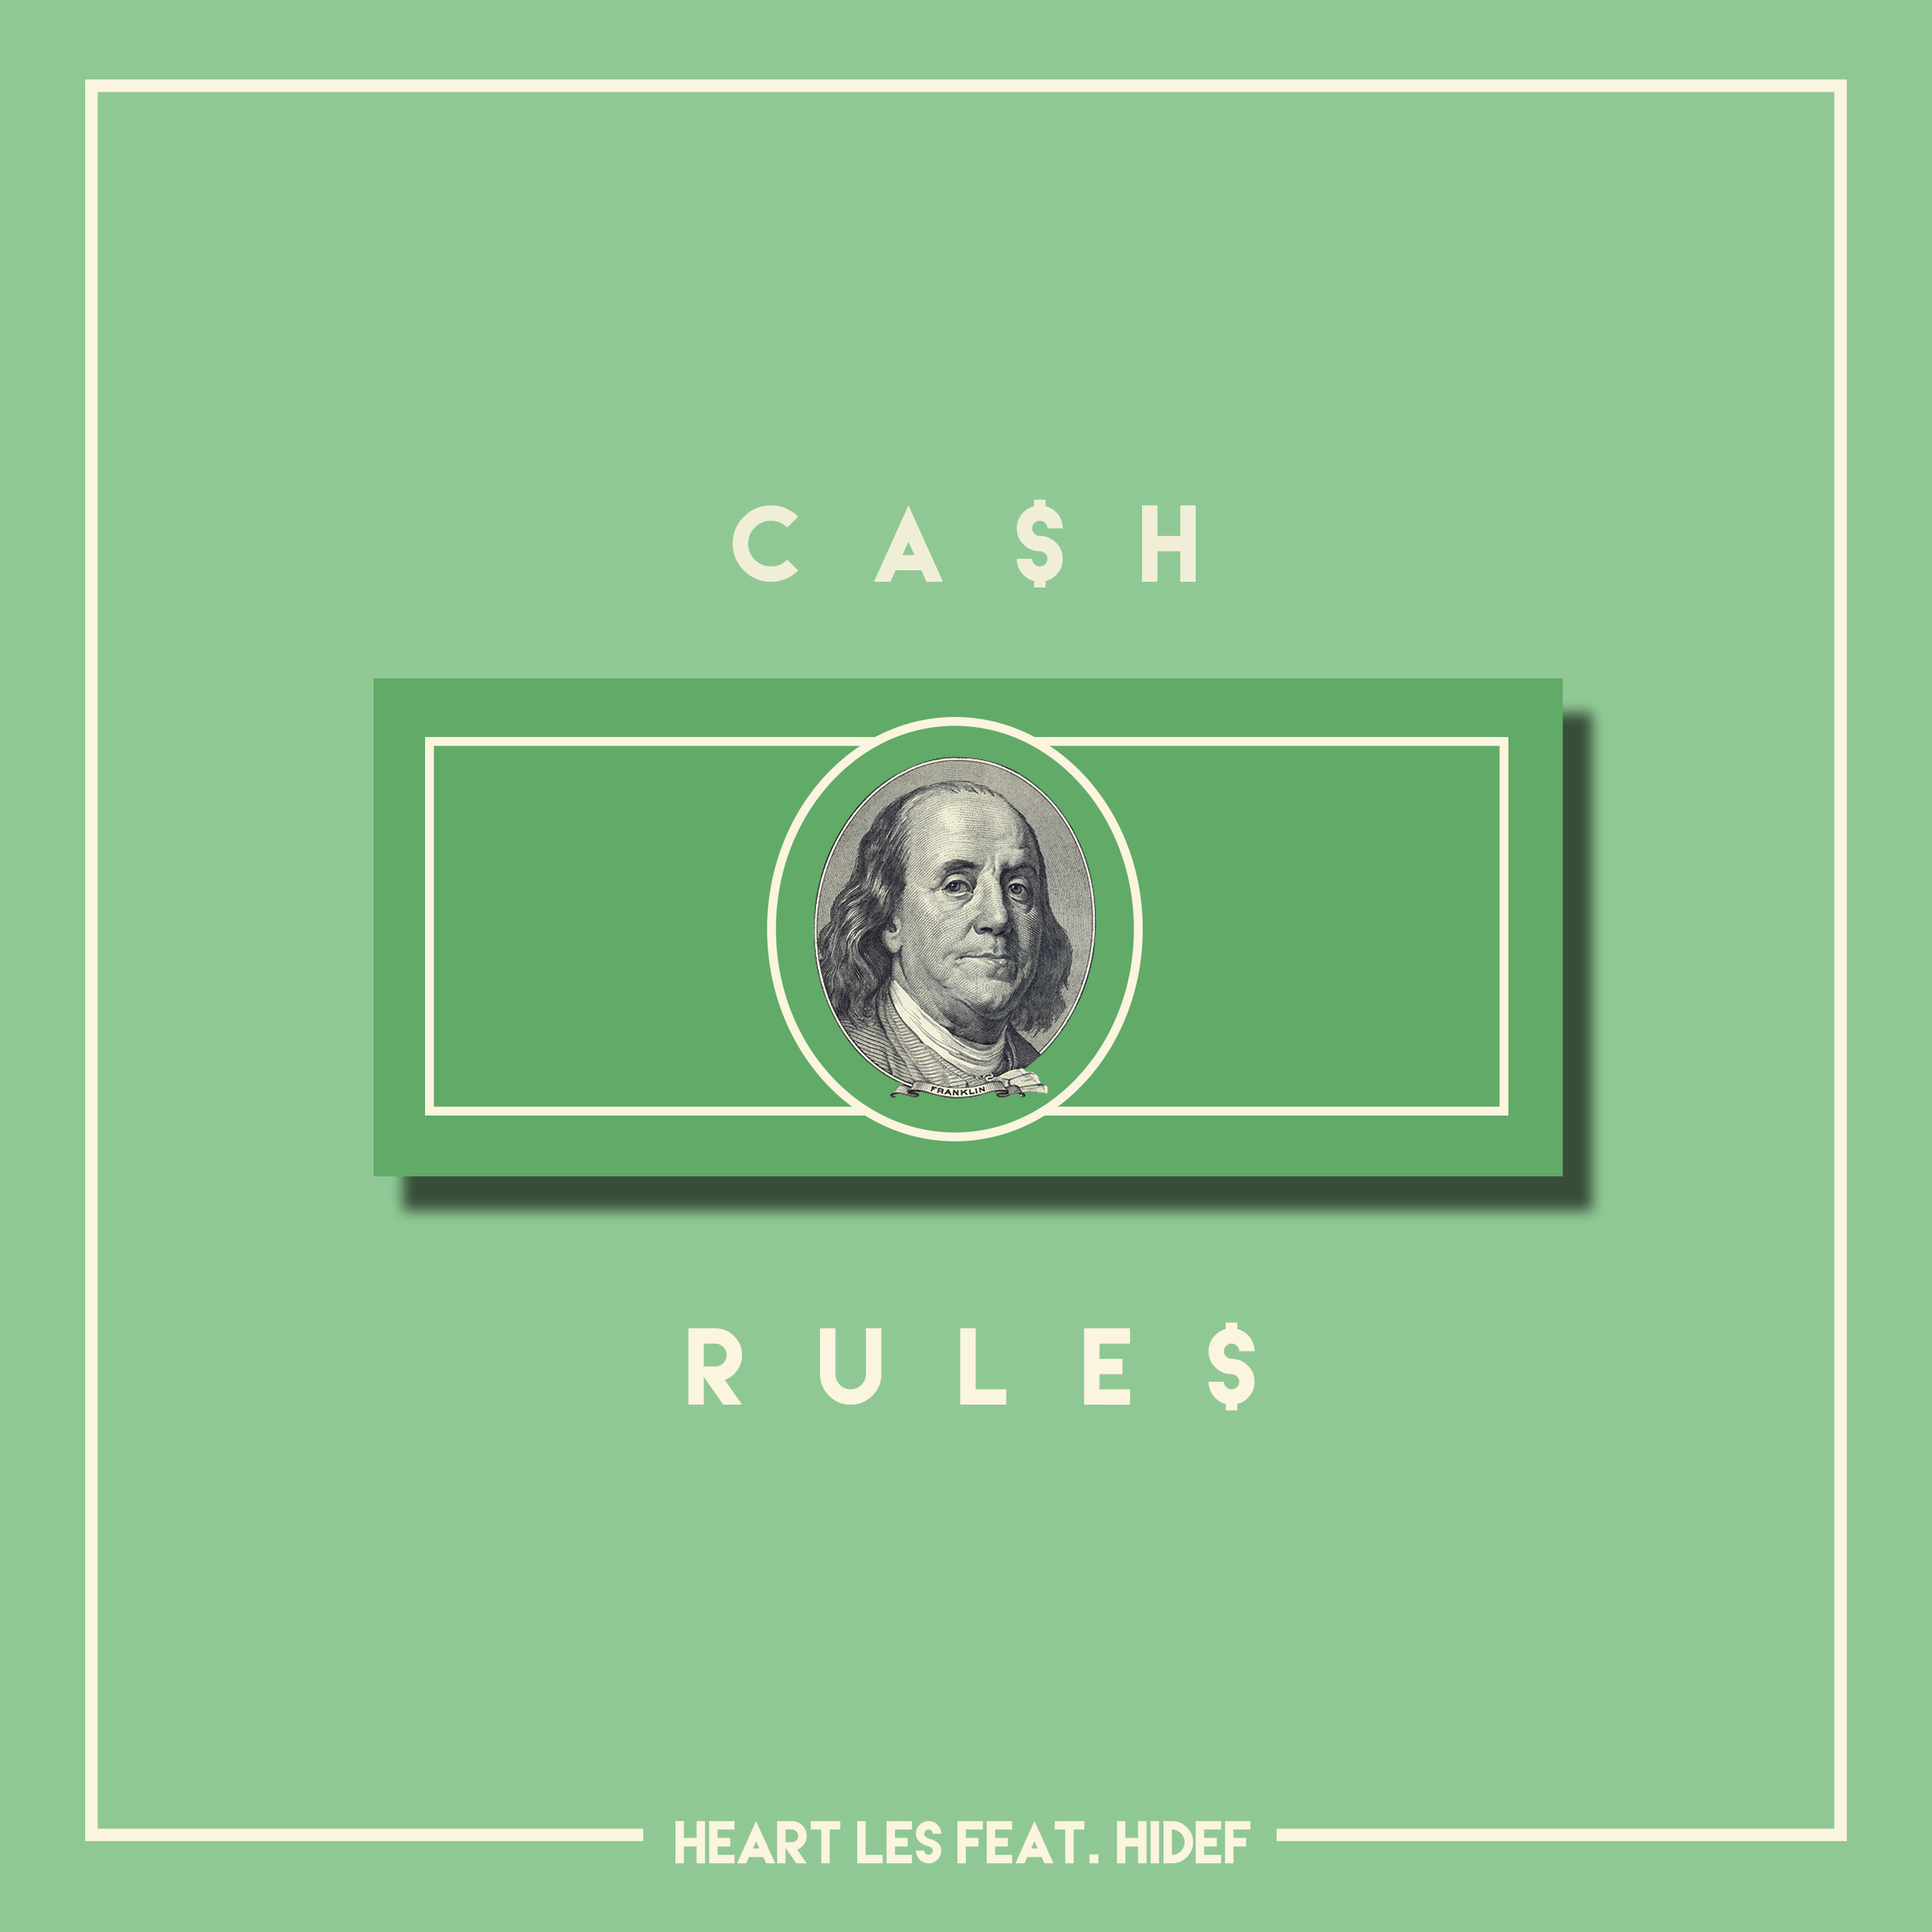 Cash Rules - Single cover artwork for Heart Les featuring Hi Def